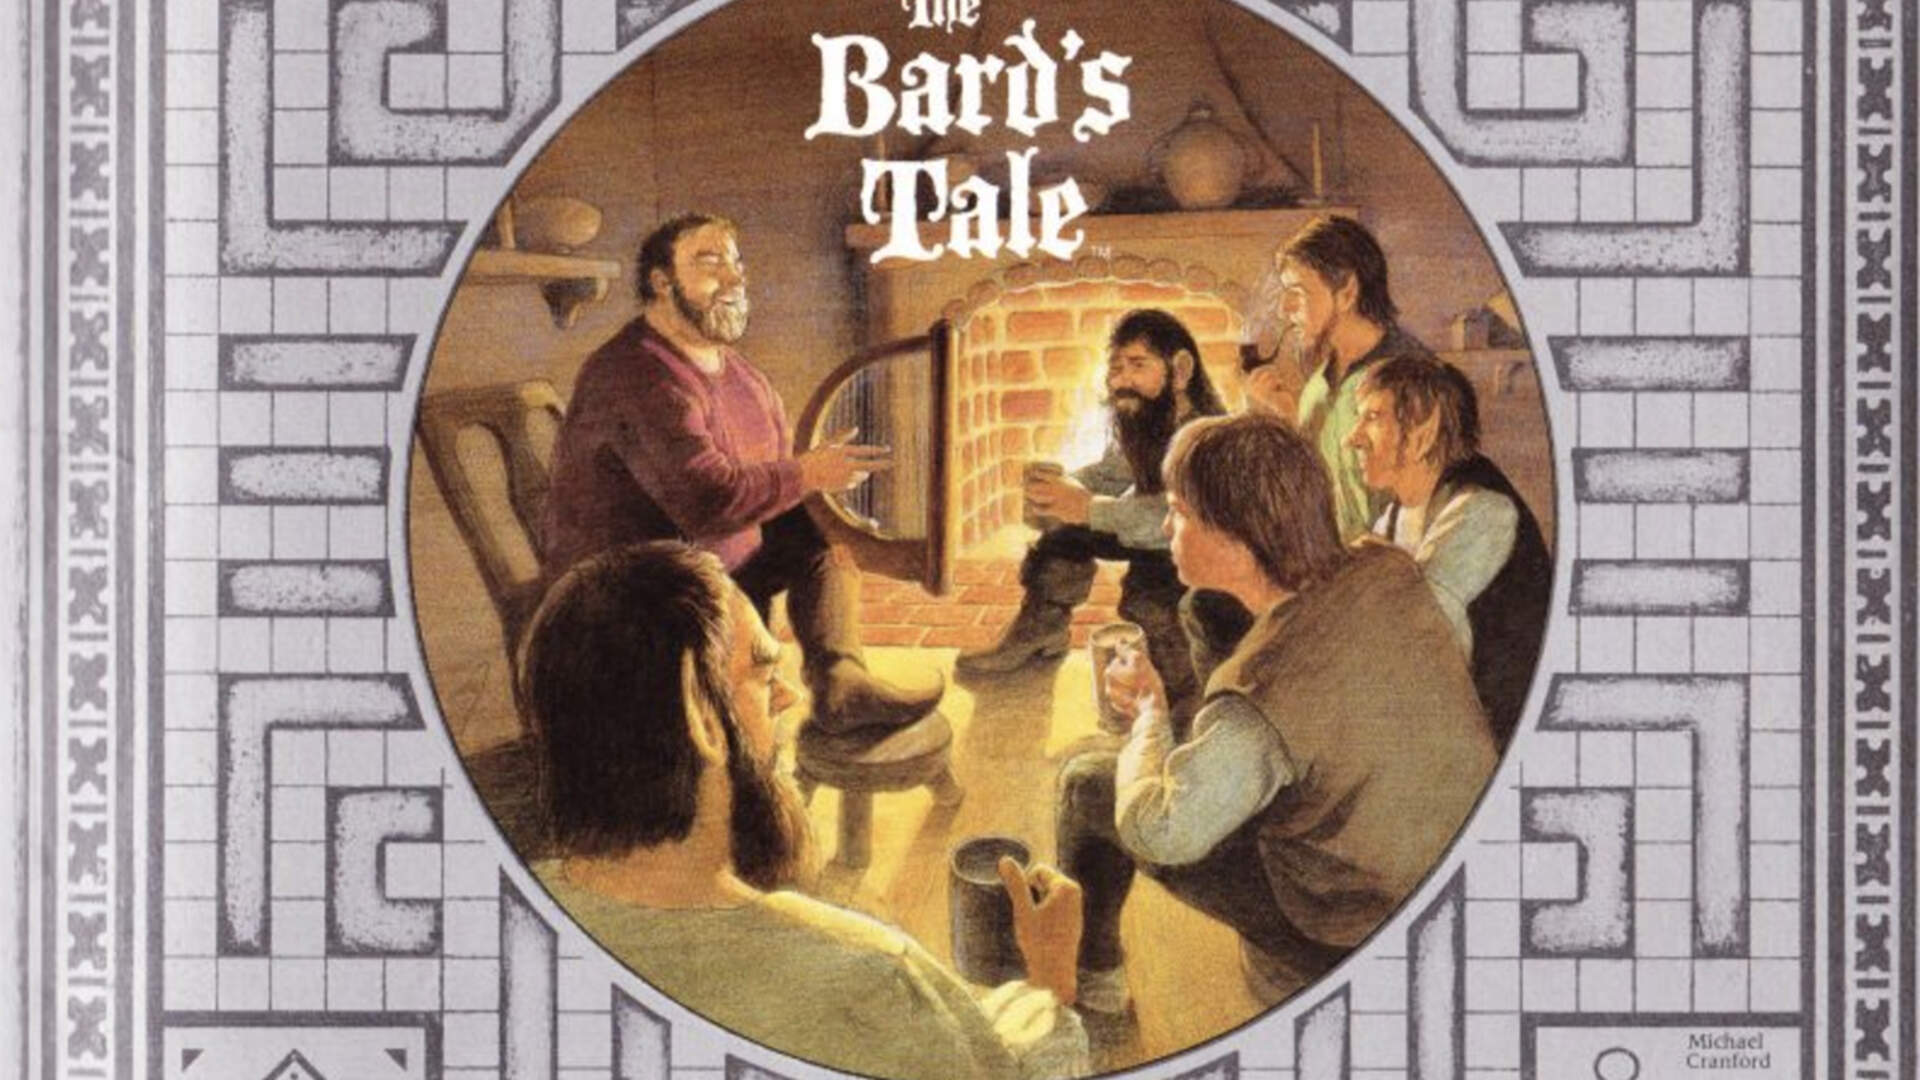 The Bard's Tale Launched the Second Wave of RPGs